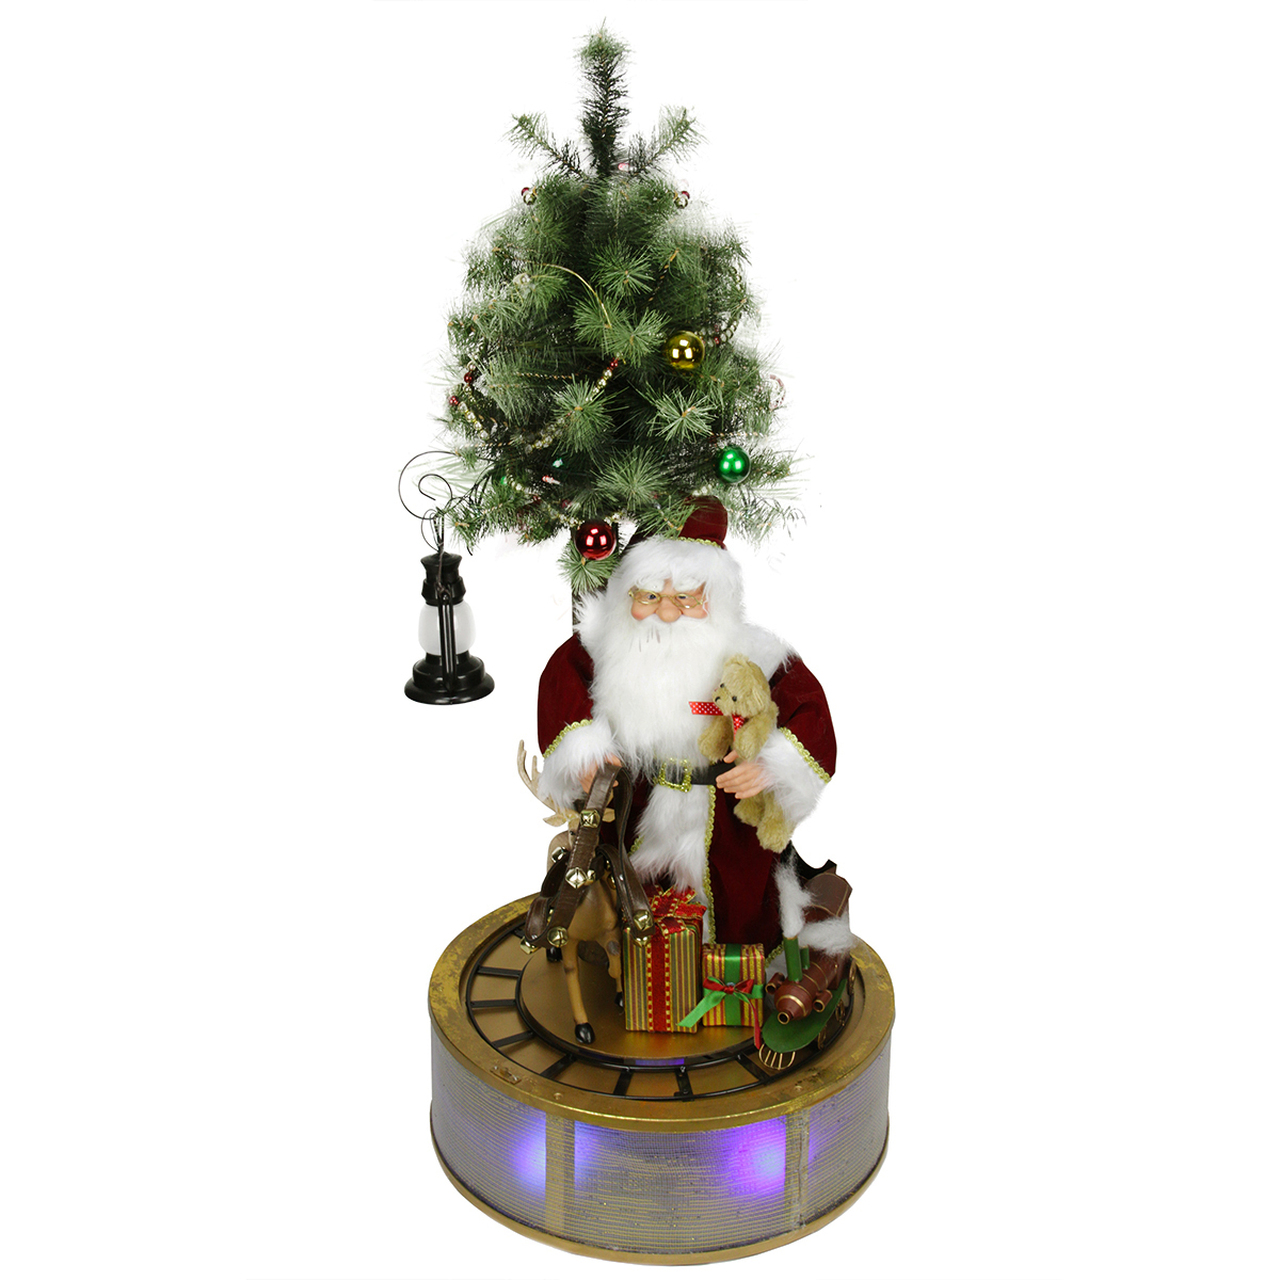 4 animated and musical lighted led santa claus with tree and rotating train christmas decor 31422213 - Musical Animated Christmas Decorations